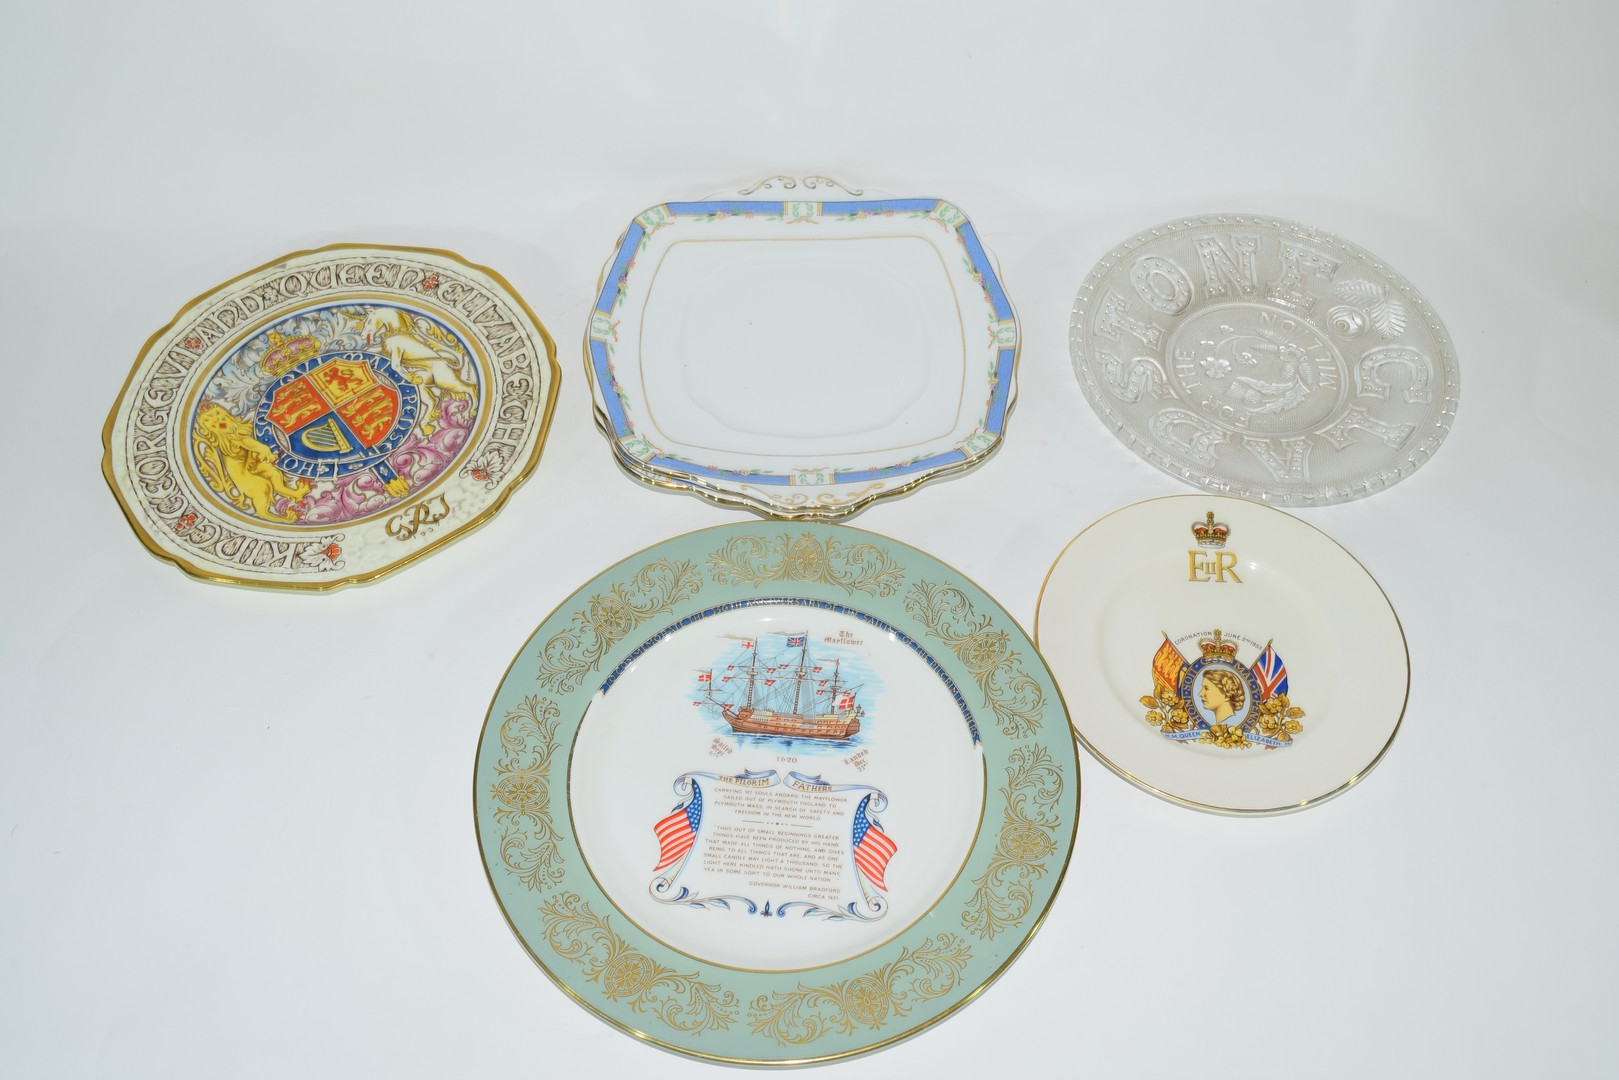 Group of decorative plates including a Paragon commemorative plate